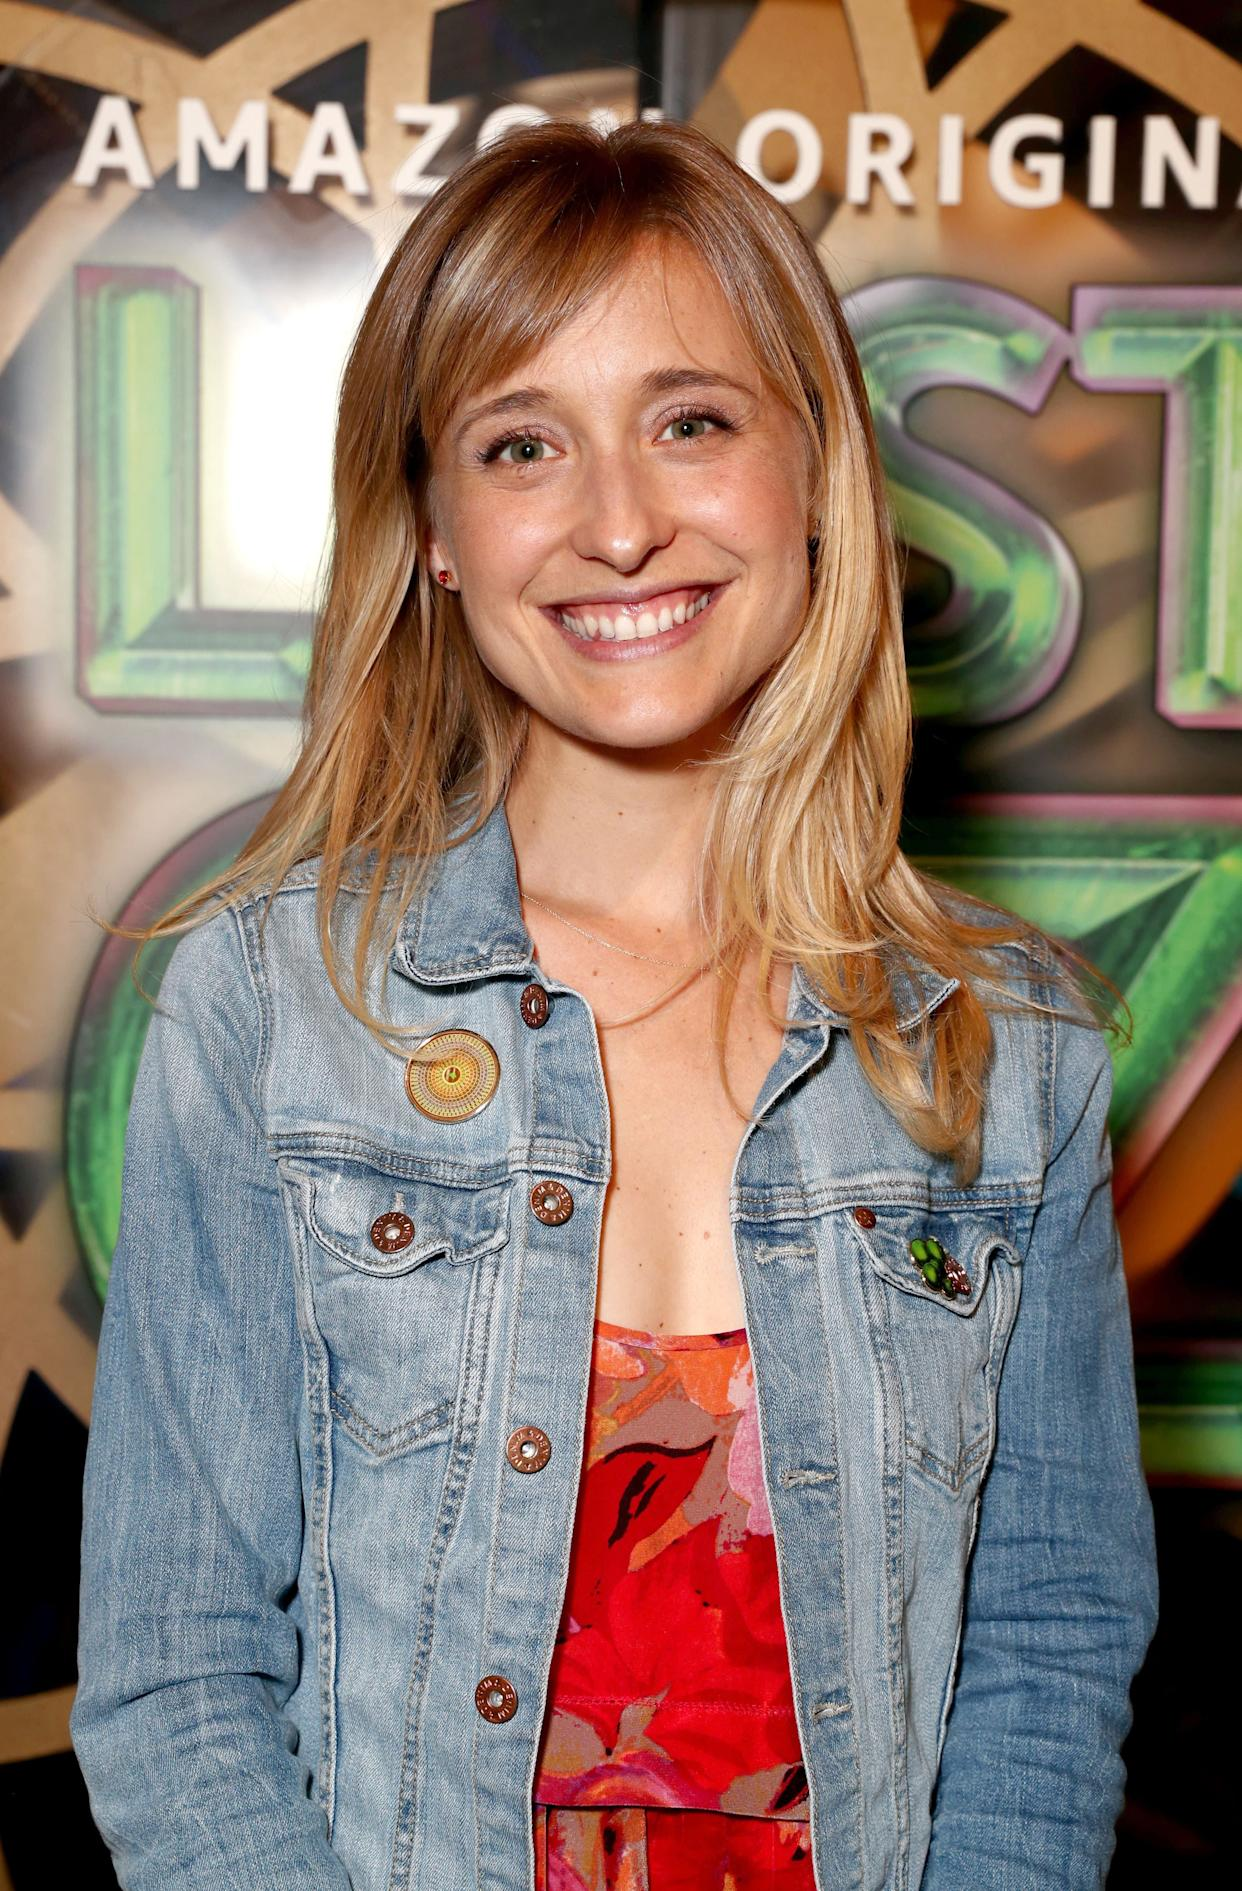 Allison Mack at an Amazon Studios premiere event in Hollywood on Aug. 1, 2017. (Photo: Todd Williamson via Getty Images)